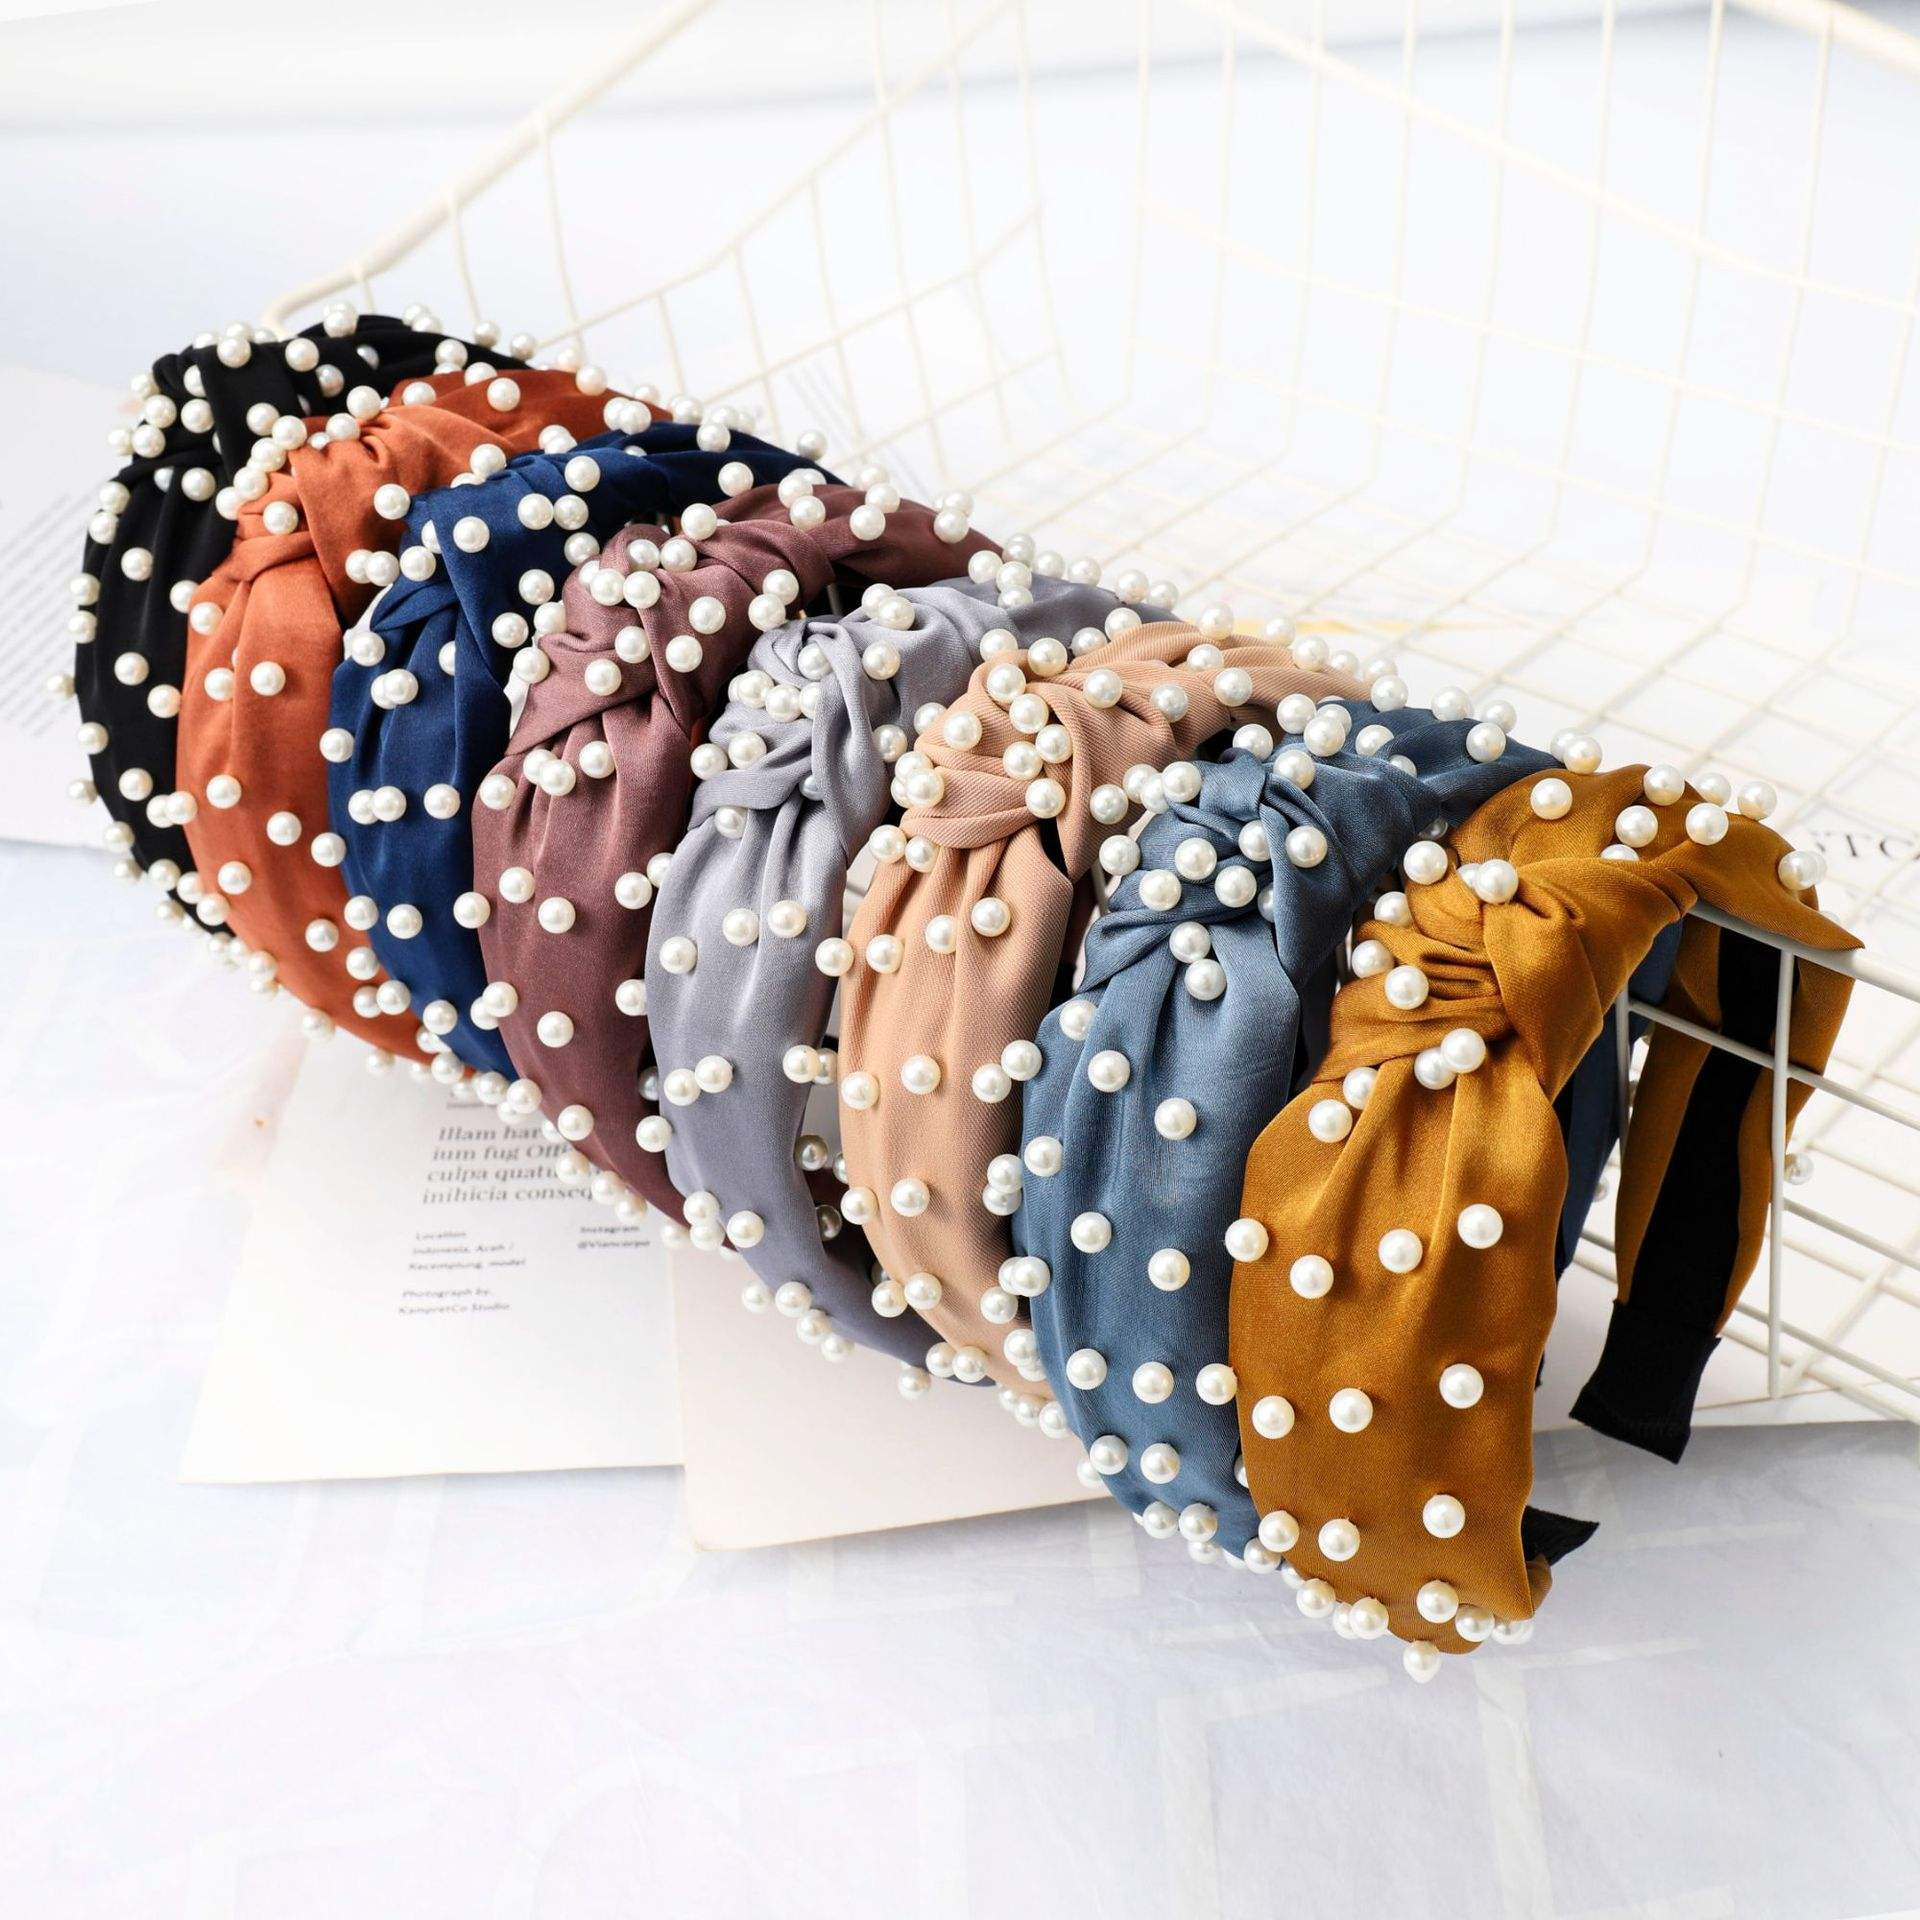 LRTOU Wholesale Korea Fashion Womens Hair Accessories Head Band Custom Women Fabric Tie Knot Pearl Plastic Headband For Girls